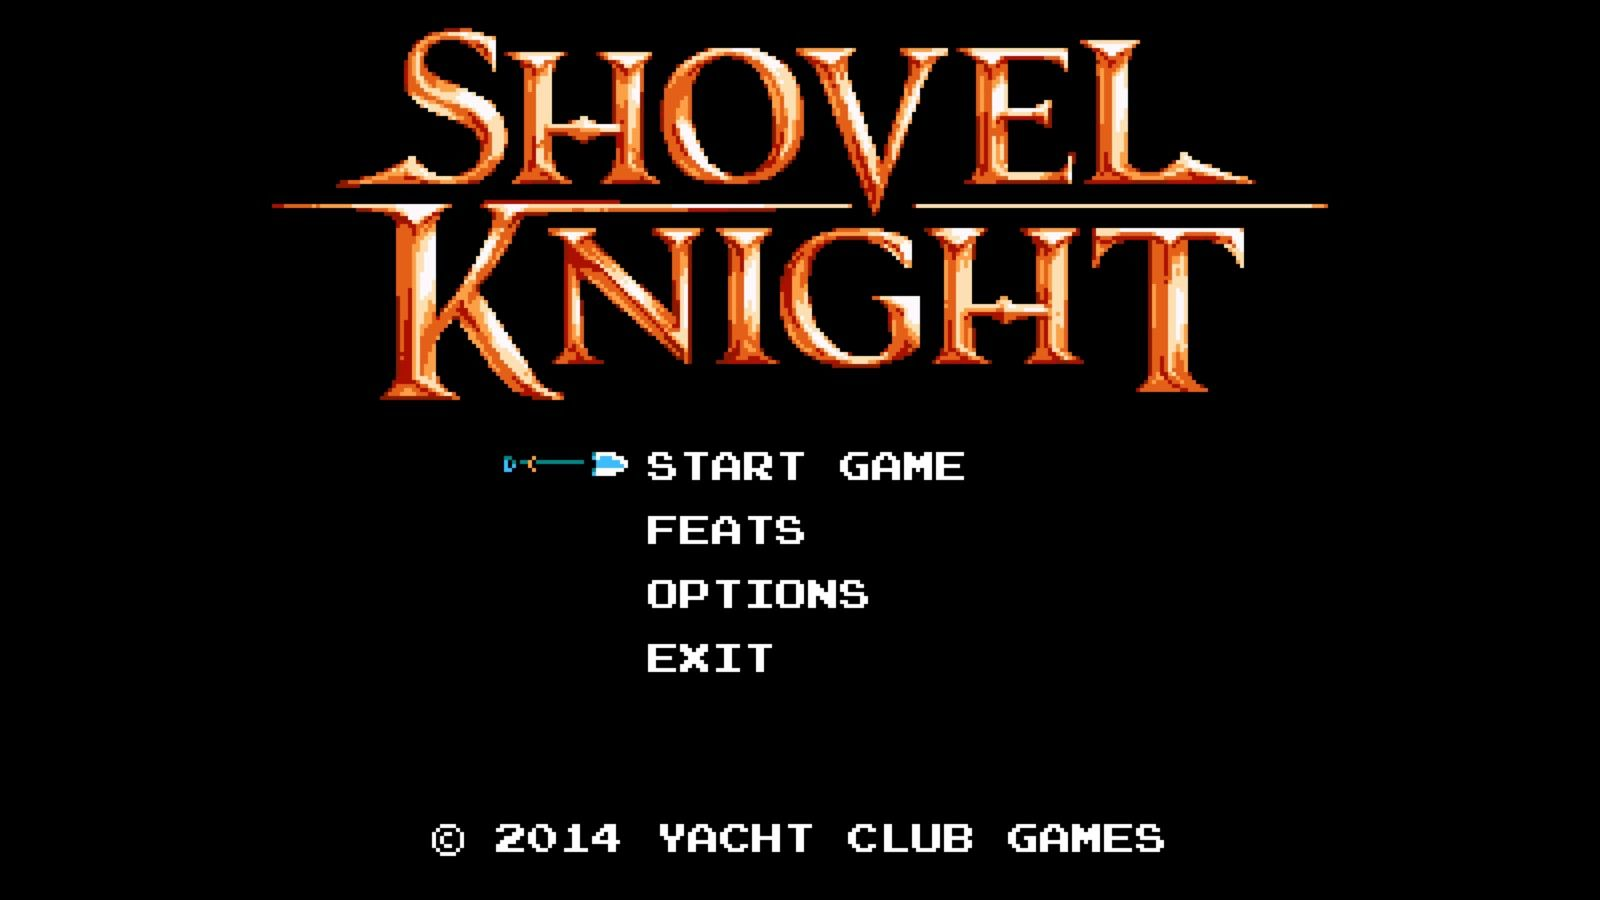 A picture of Shovel Knight's Start Screen.